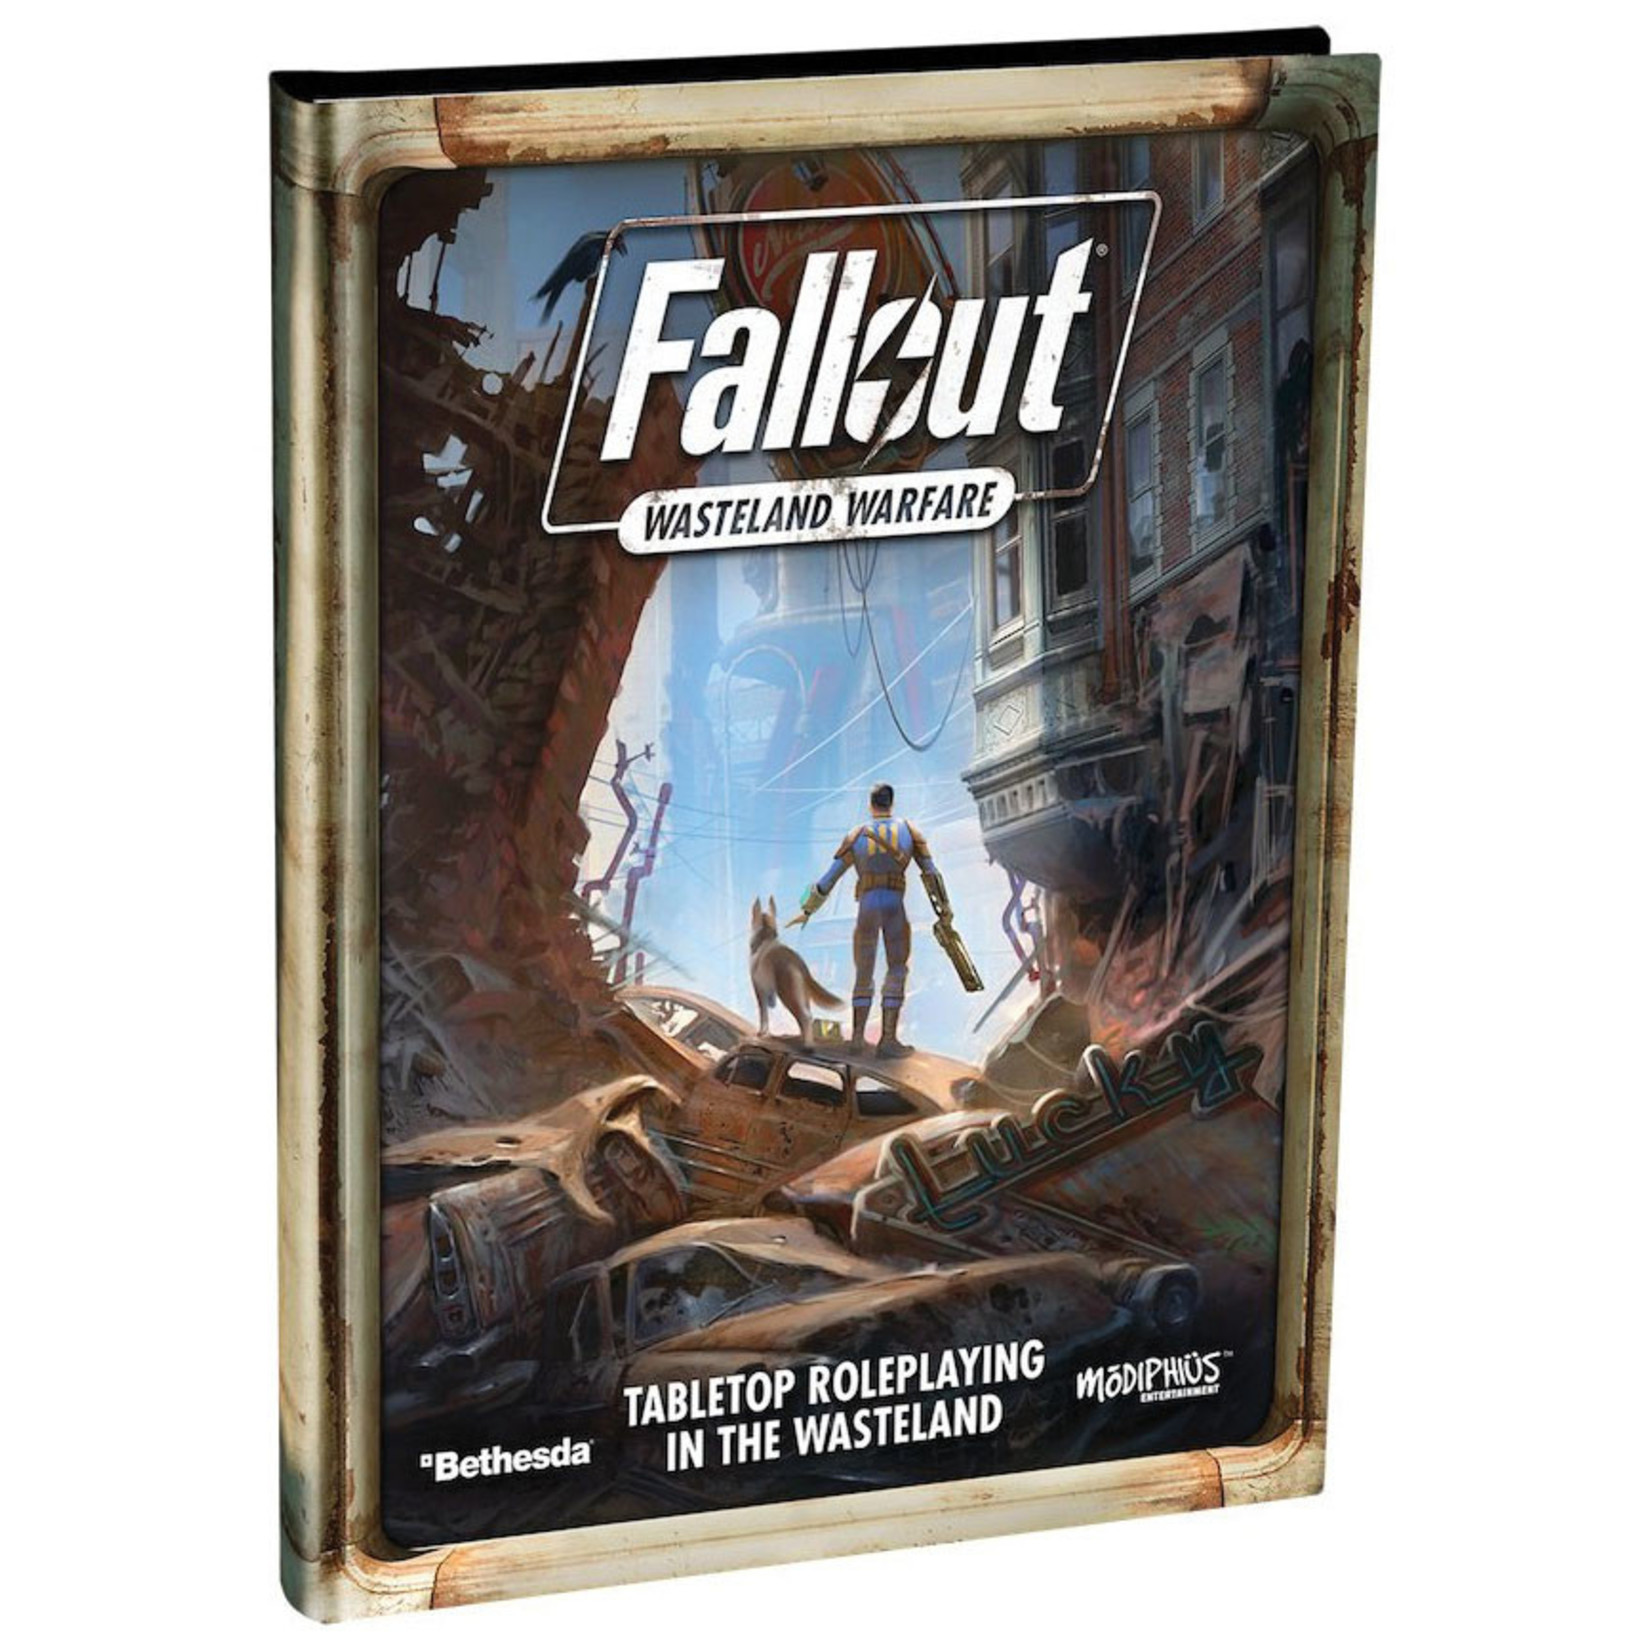 Modiphius Fallout: Wasteland Warfare RPG